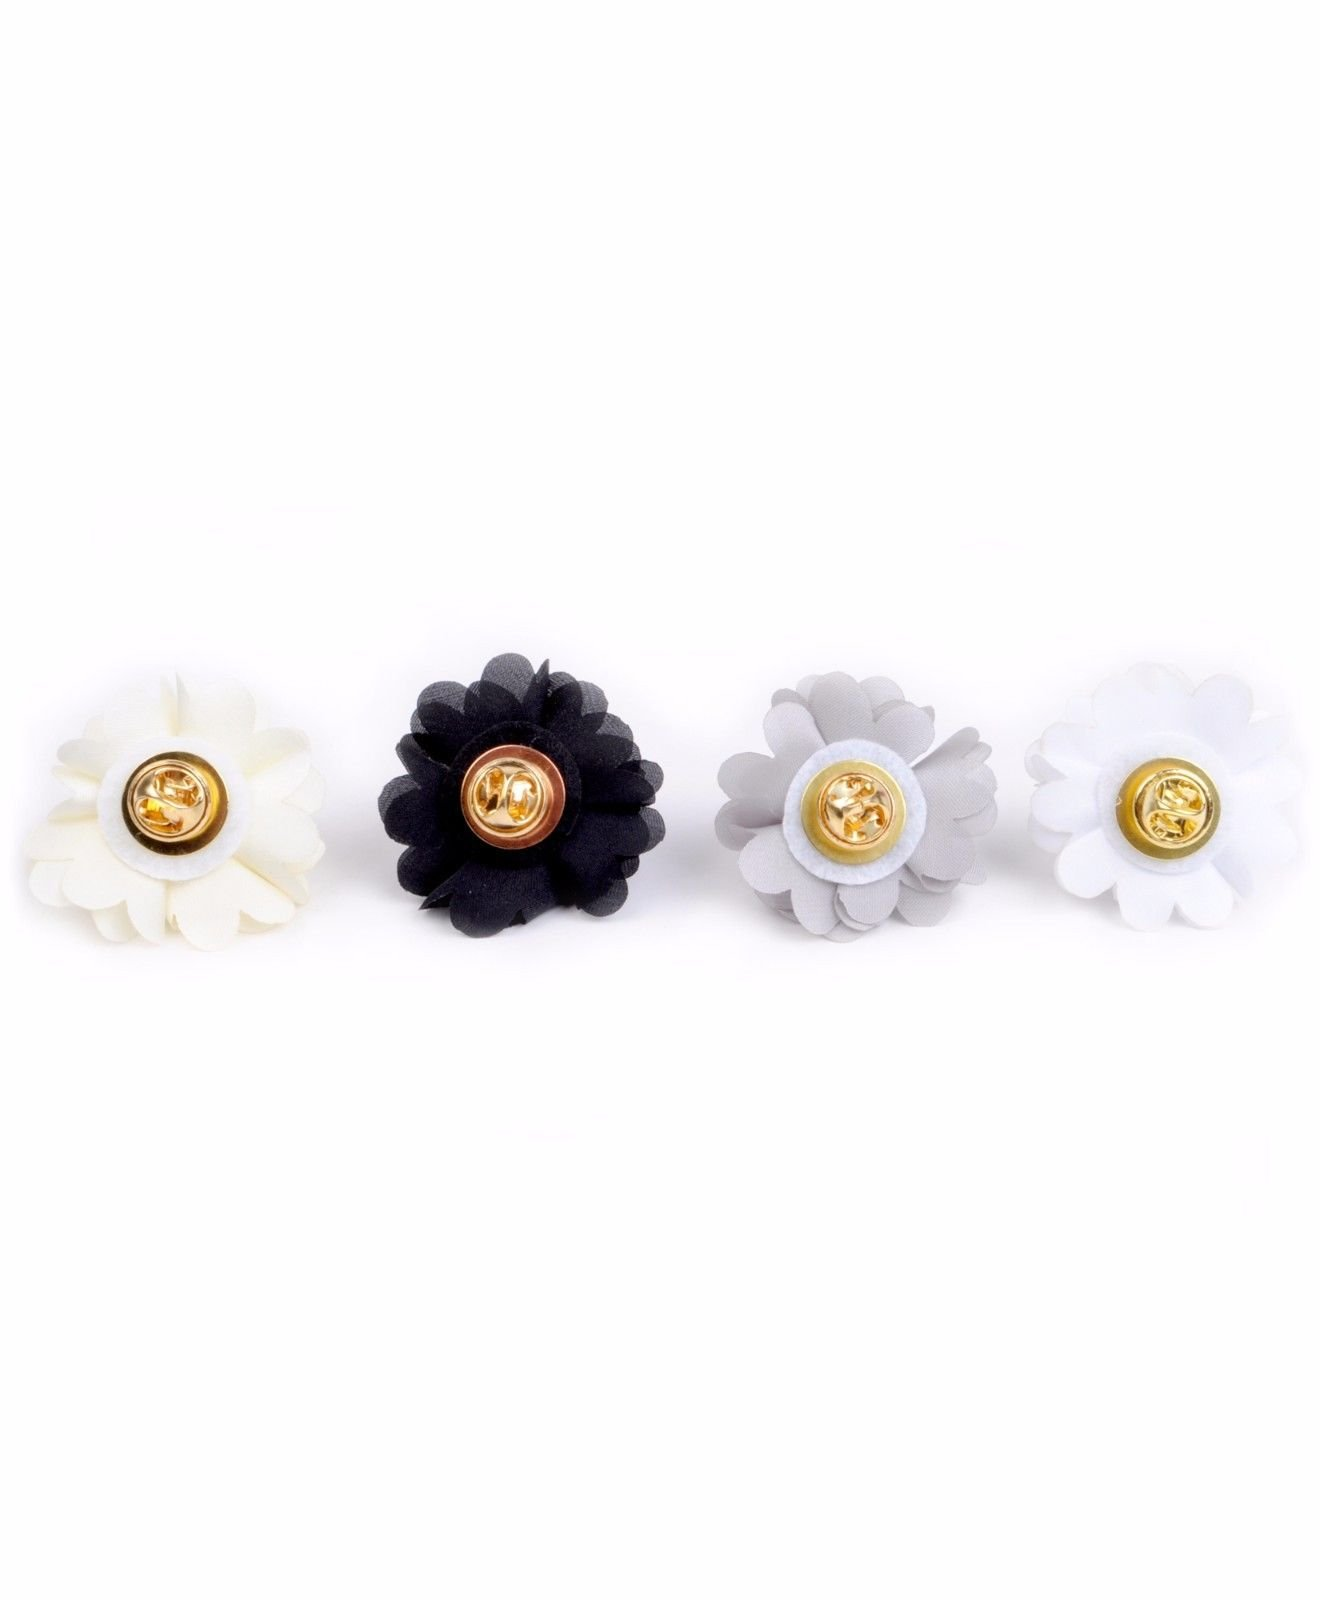 BG-Mini-Bouquet-Clutch-Back-Flower-Tuxedo-Suit-Lapel-Pins-Boutonniere-4-Pack-Set thumbnail 29